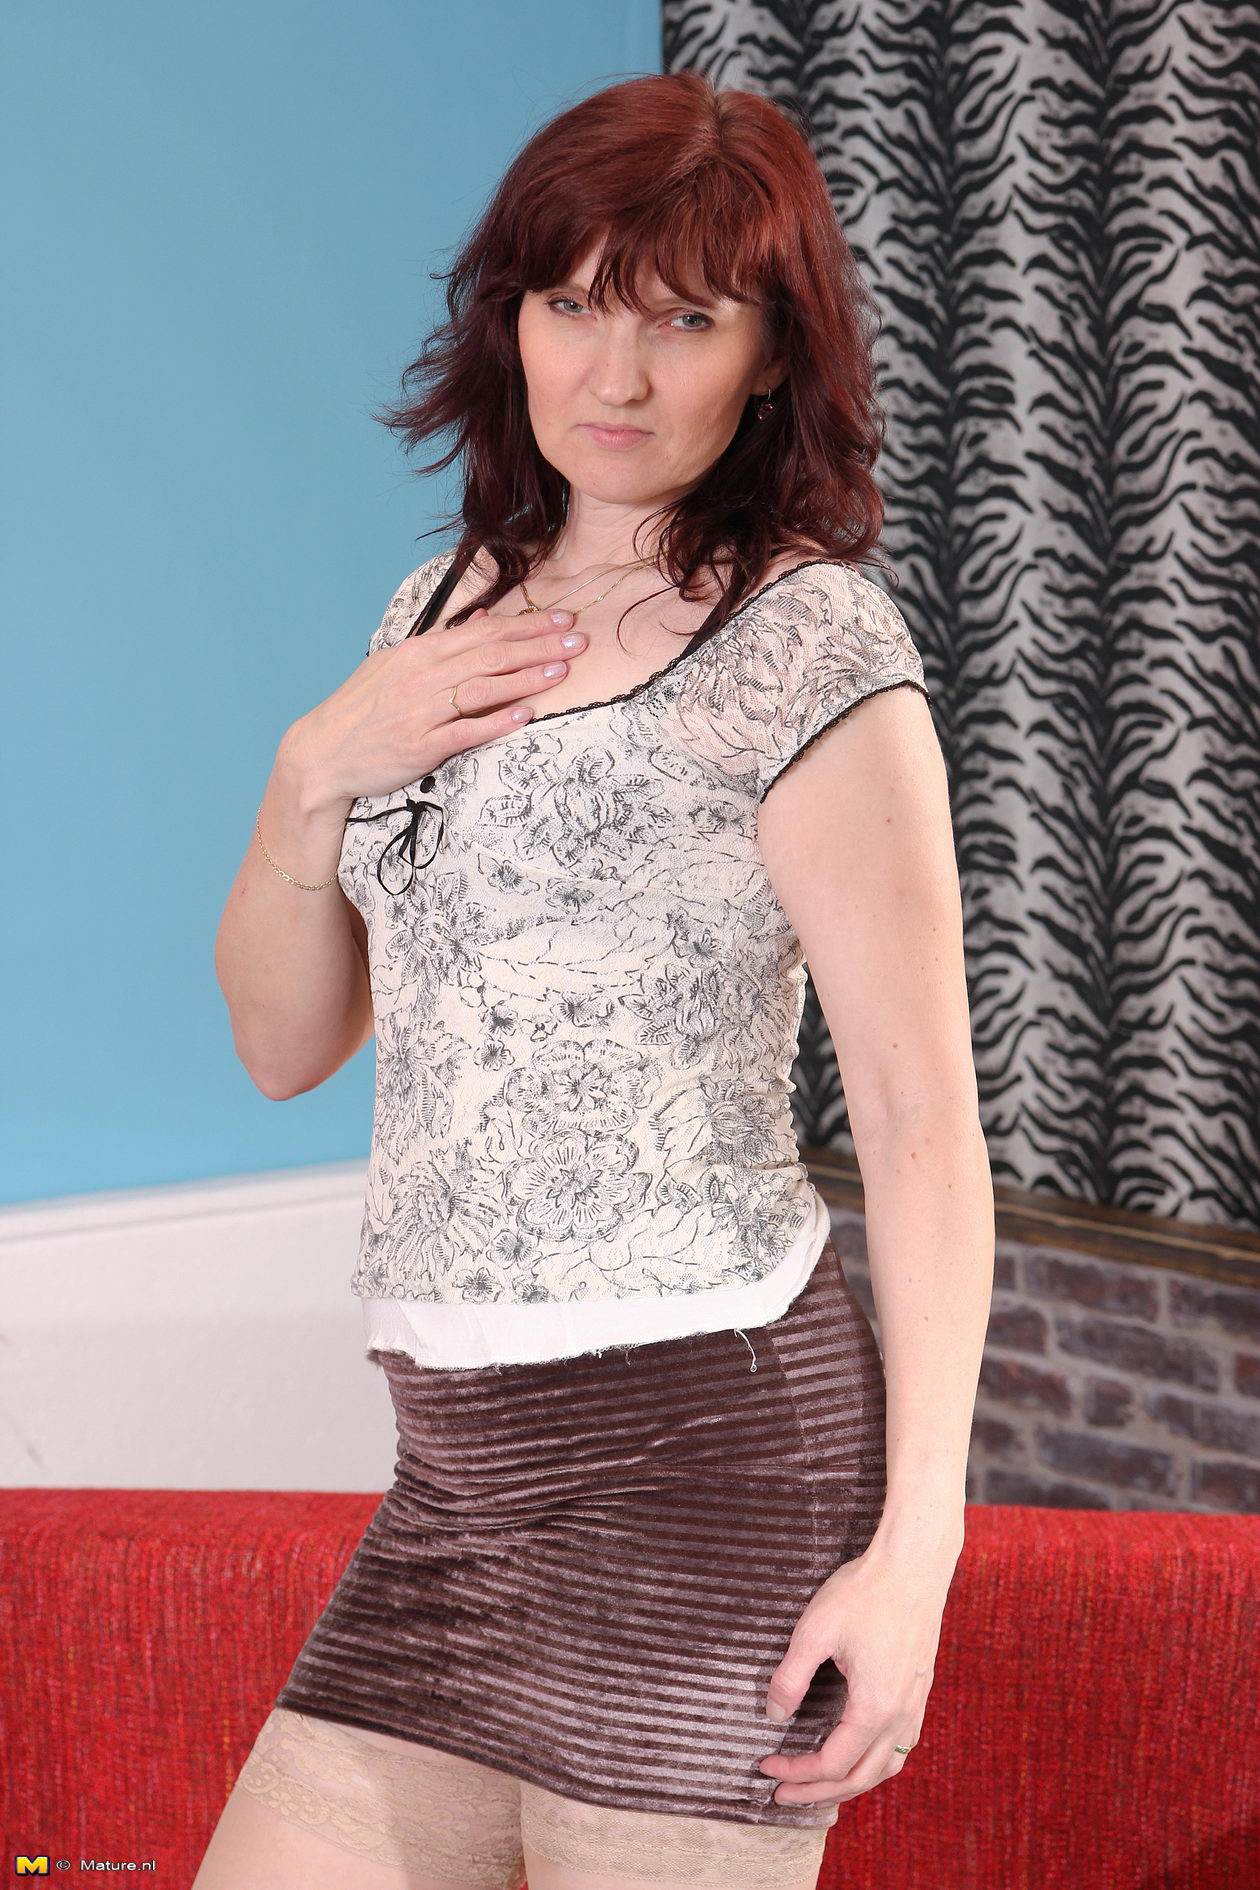 This naughty and hot British housewife loves to play alone